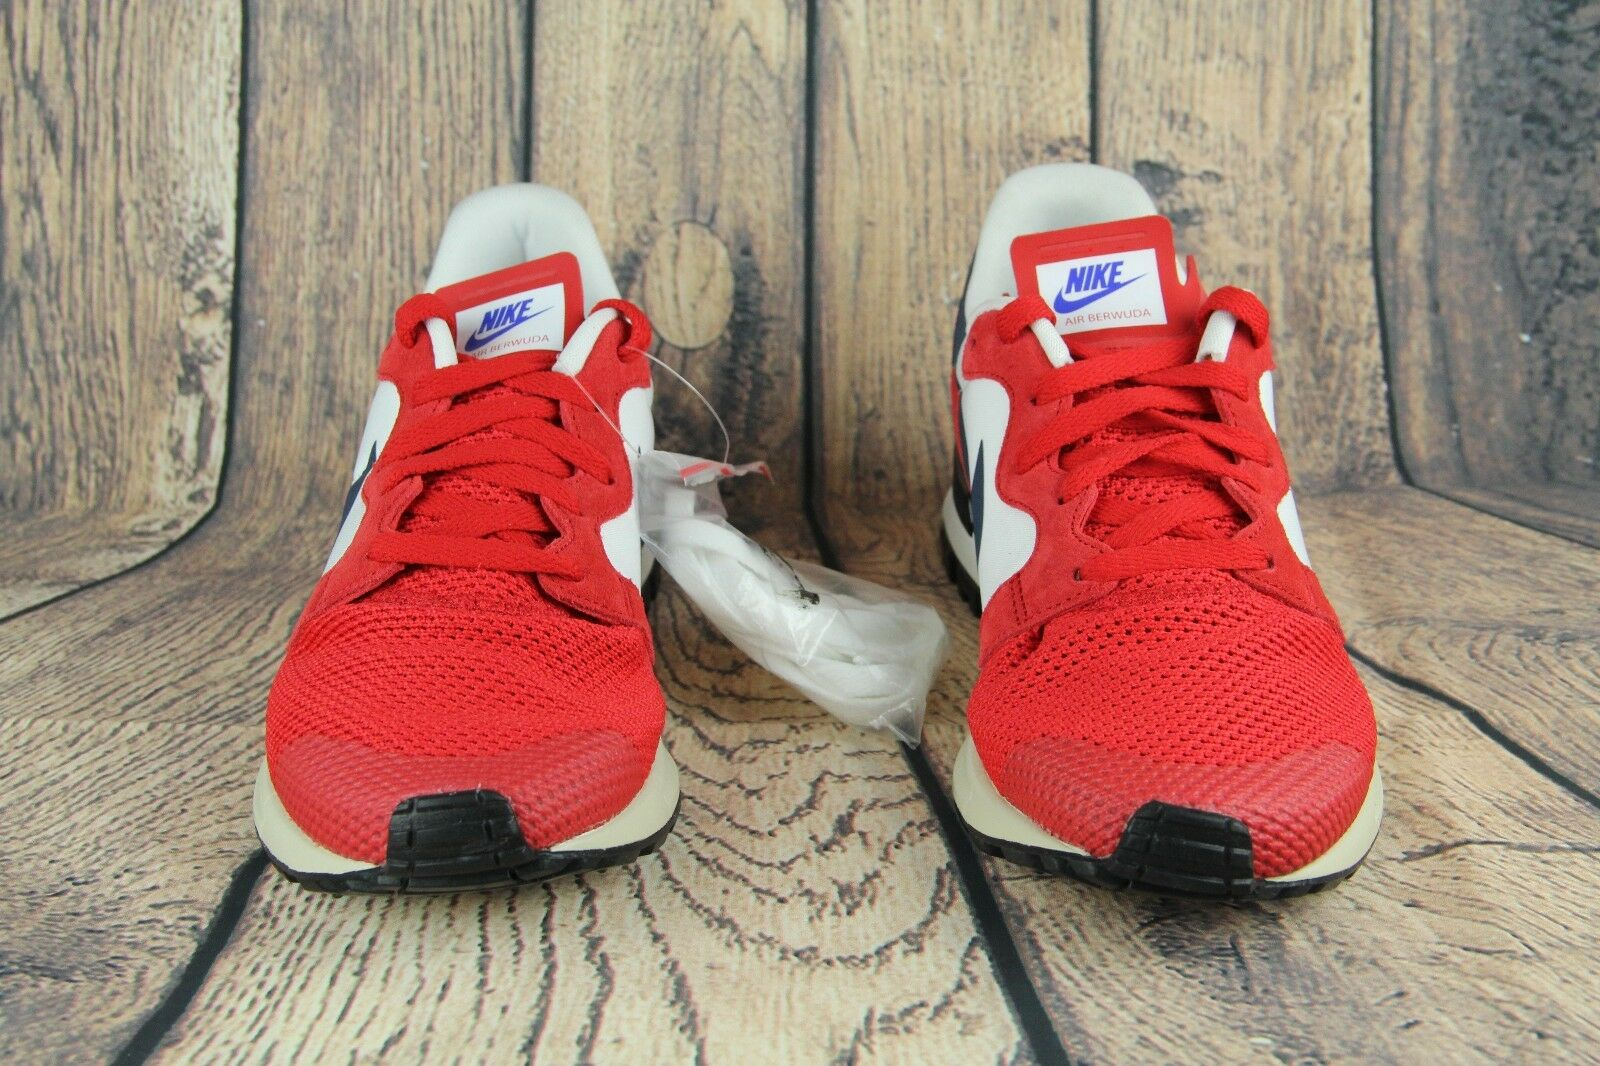 NEW  NIKE AIR BERWUDA Red White blueee extra laces 555305-601 SZ 10.5  all products get up to 34% off